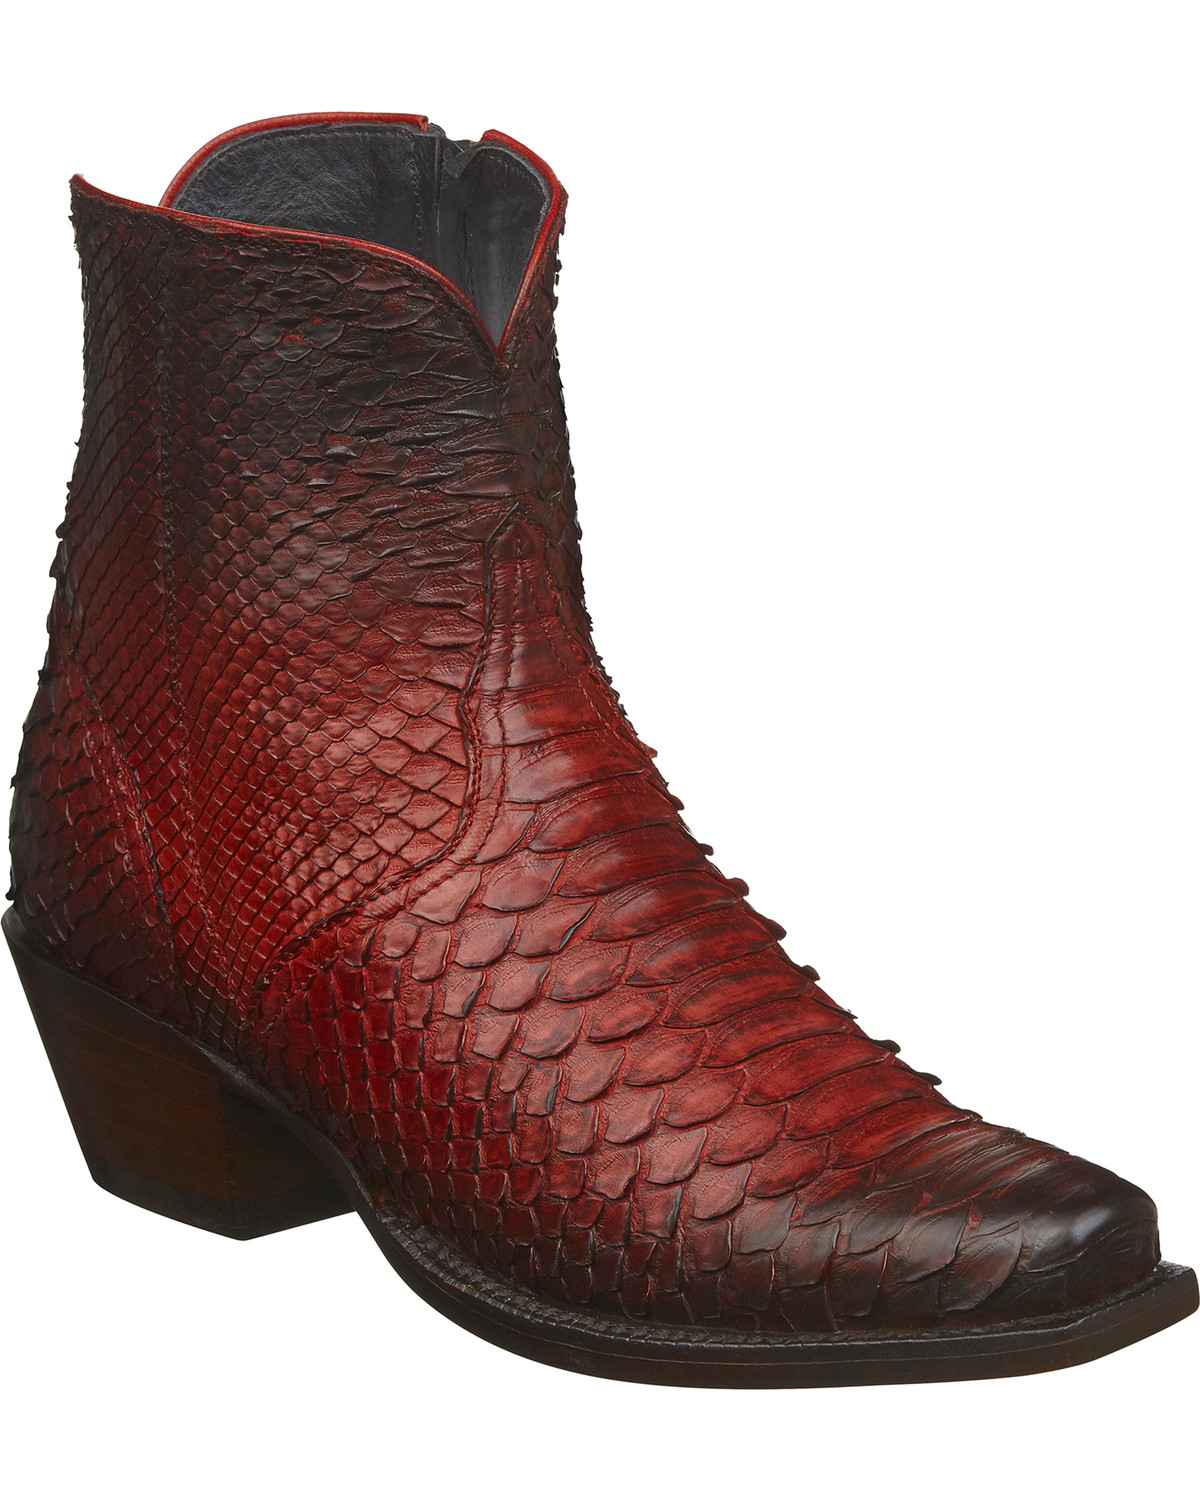 Brilliant Lucchese Janis Ankle Boots (For Women) 8816J